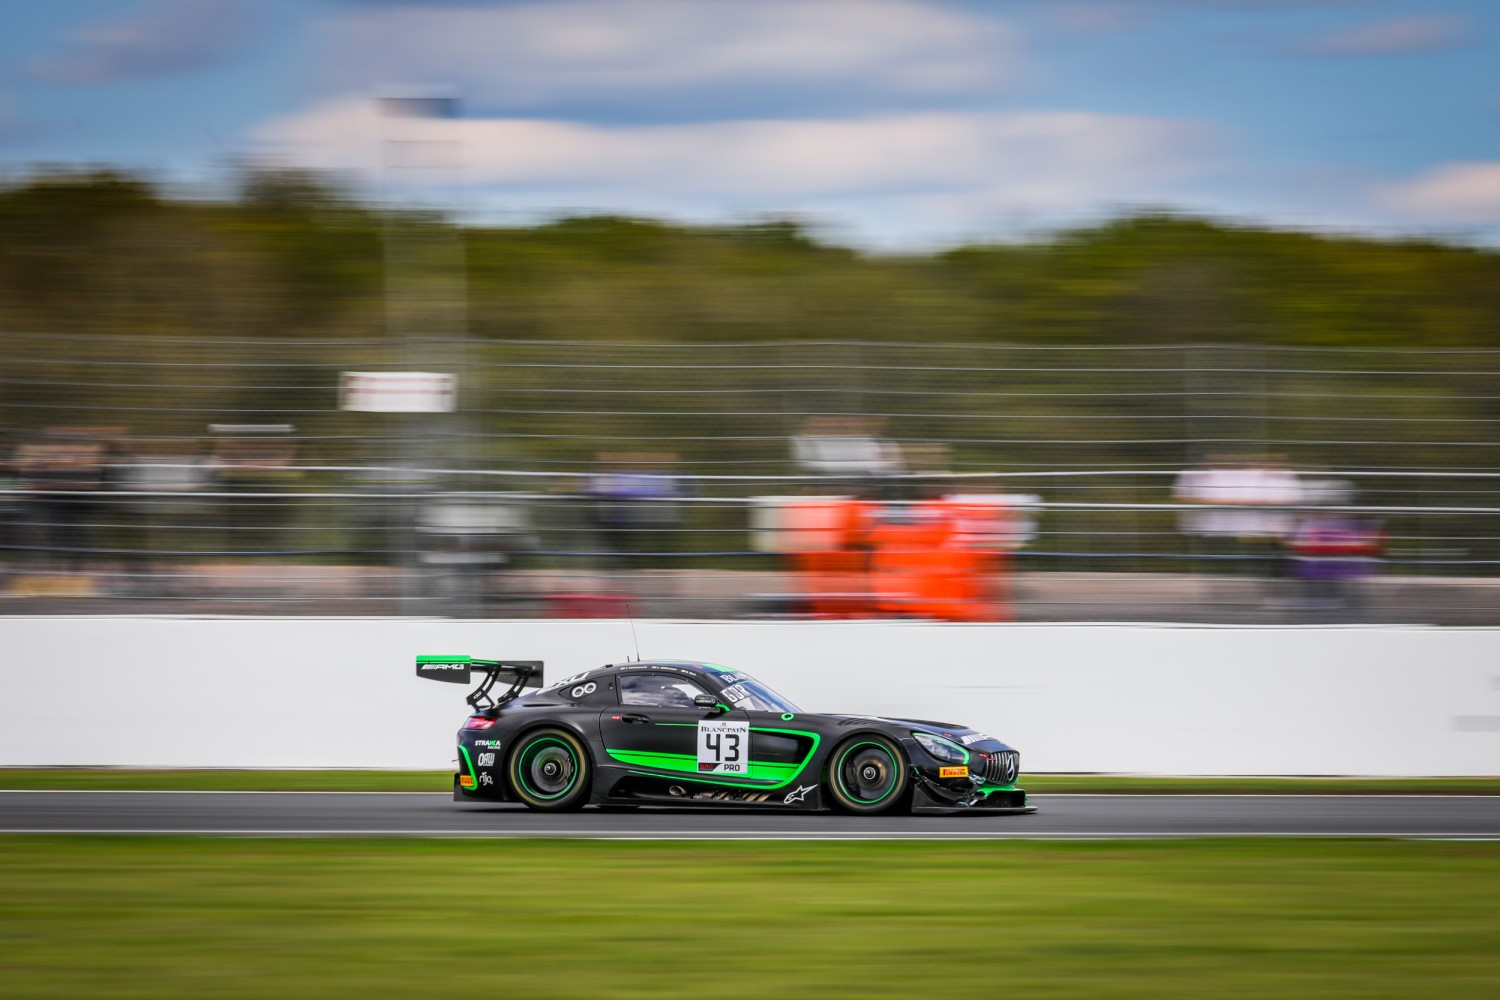 #43 Strakka Racing GBR Mercedes-AMG GT3 Jack Hawksworth GBR Dev Gore USA Lewis Williamson GBR -, Race  | SRO Motorsports Group